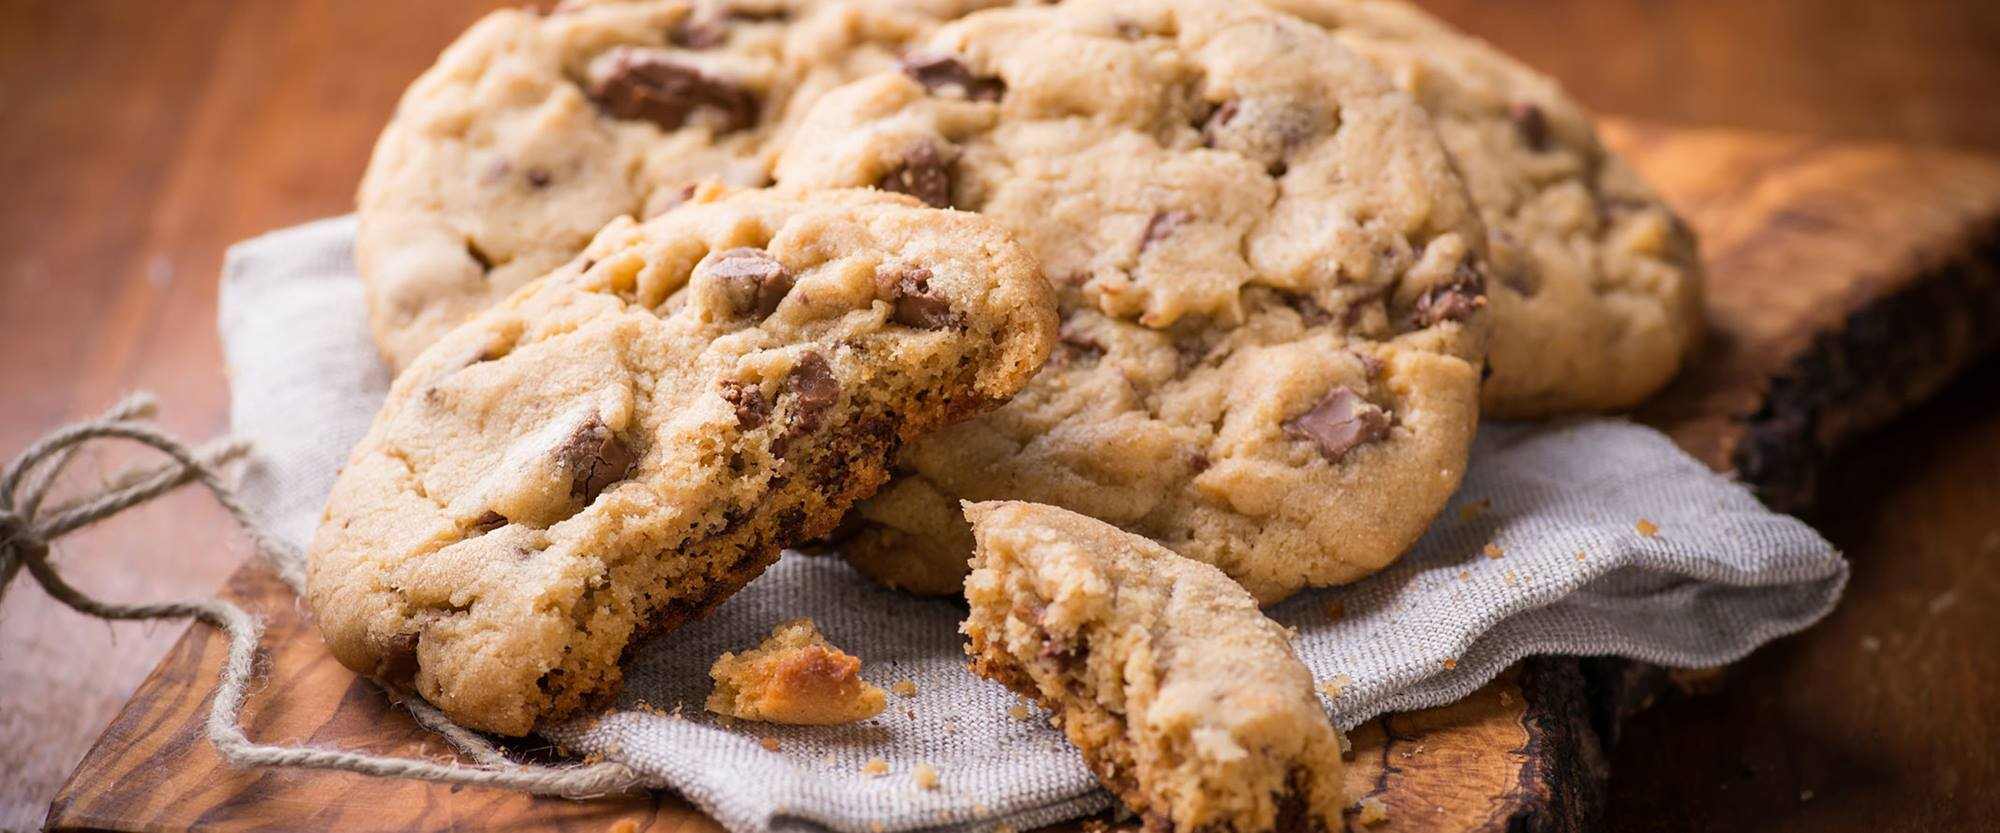 Cookies with whey ingredients for crunchy surface and chewy centre